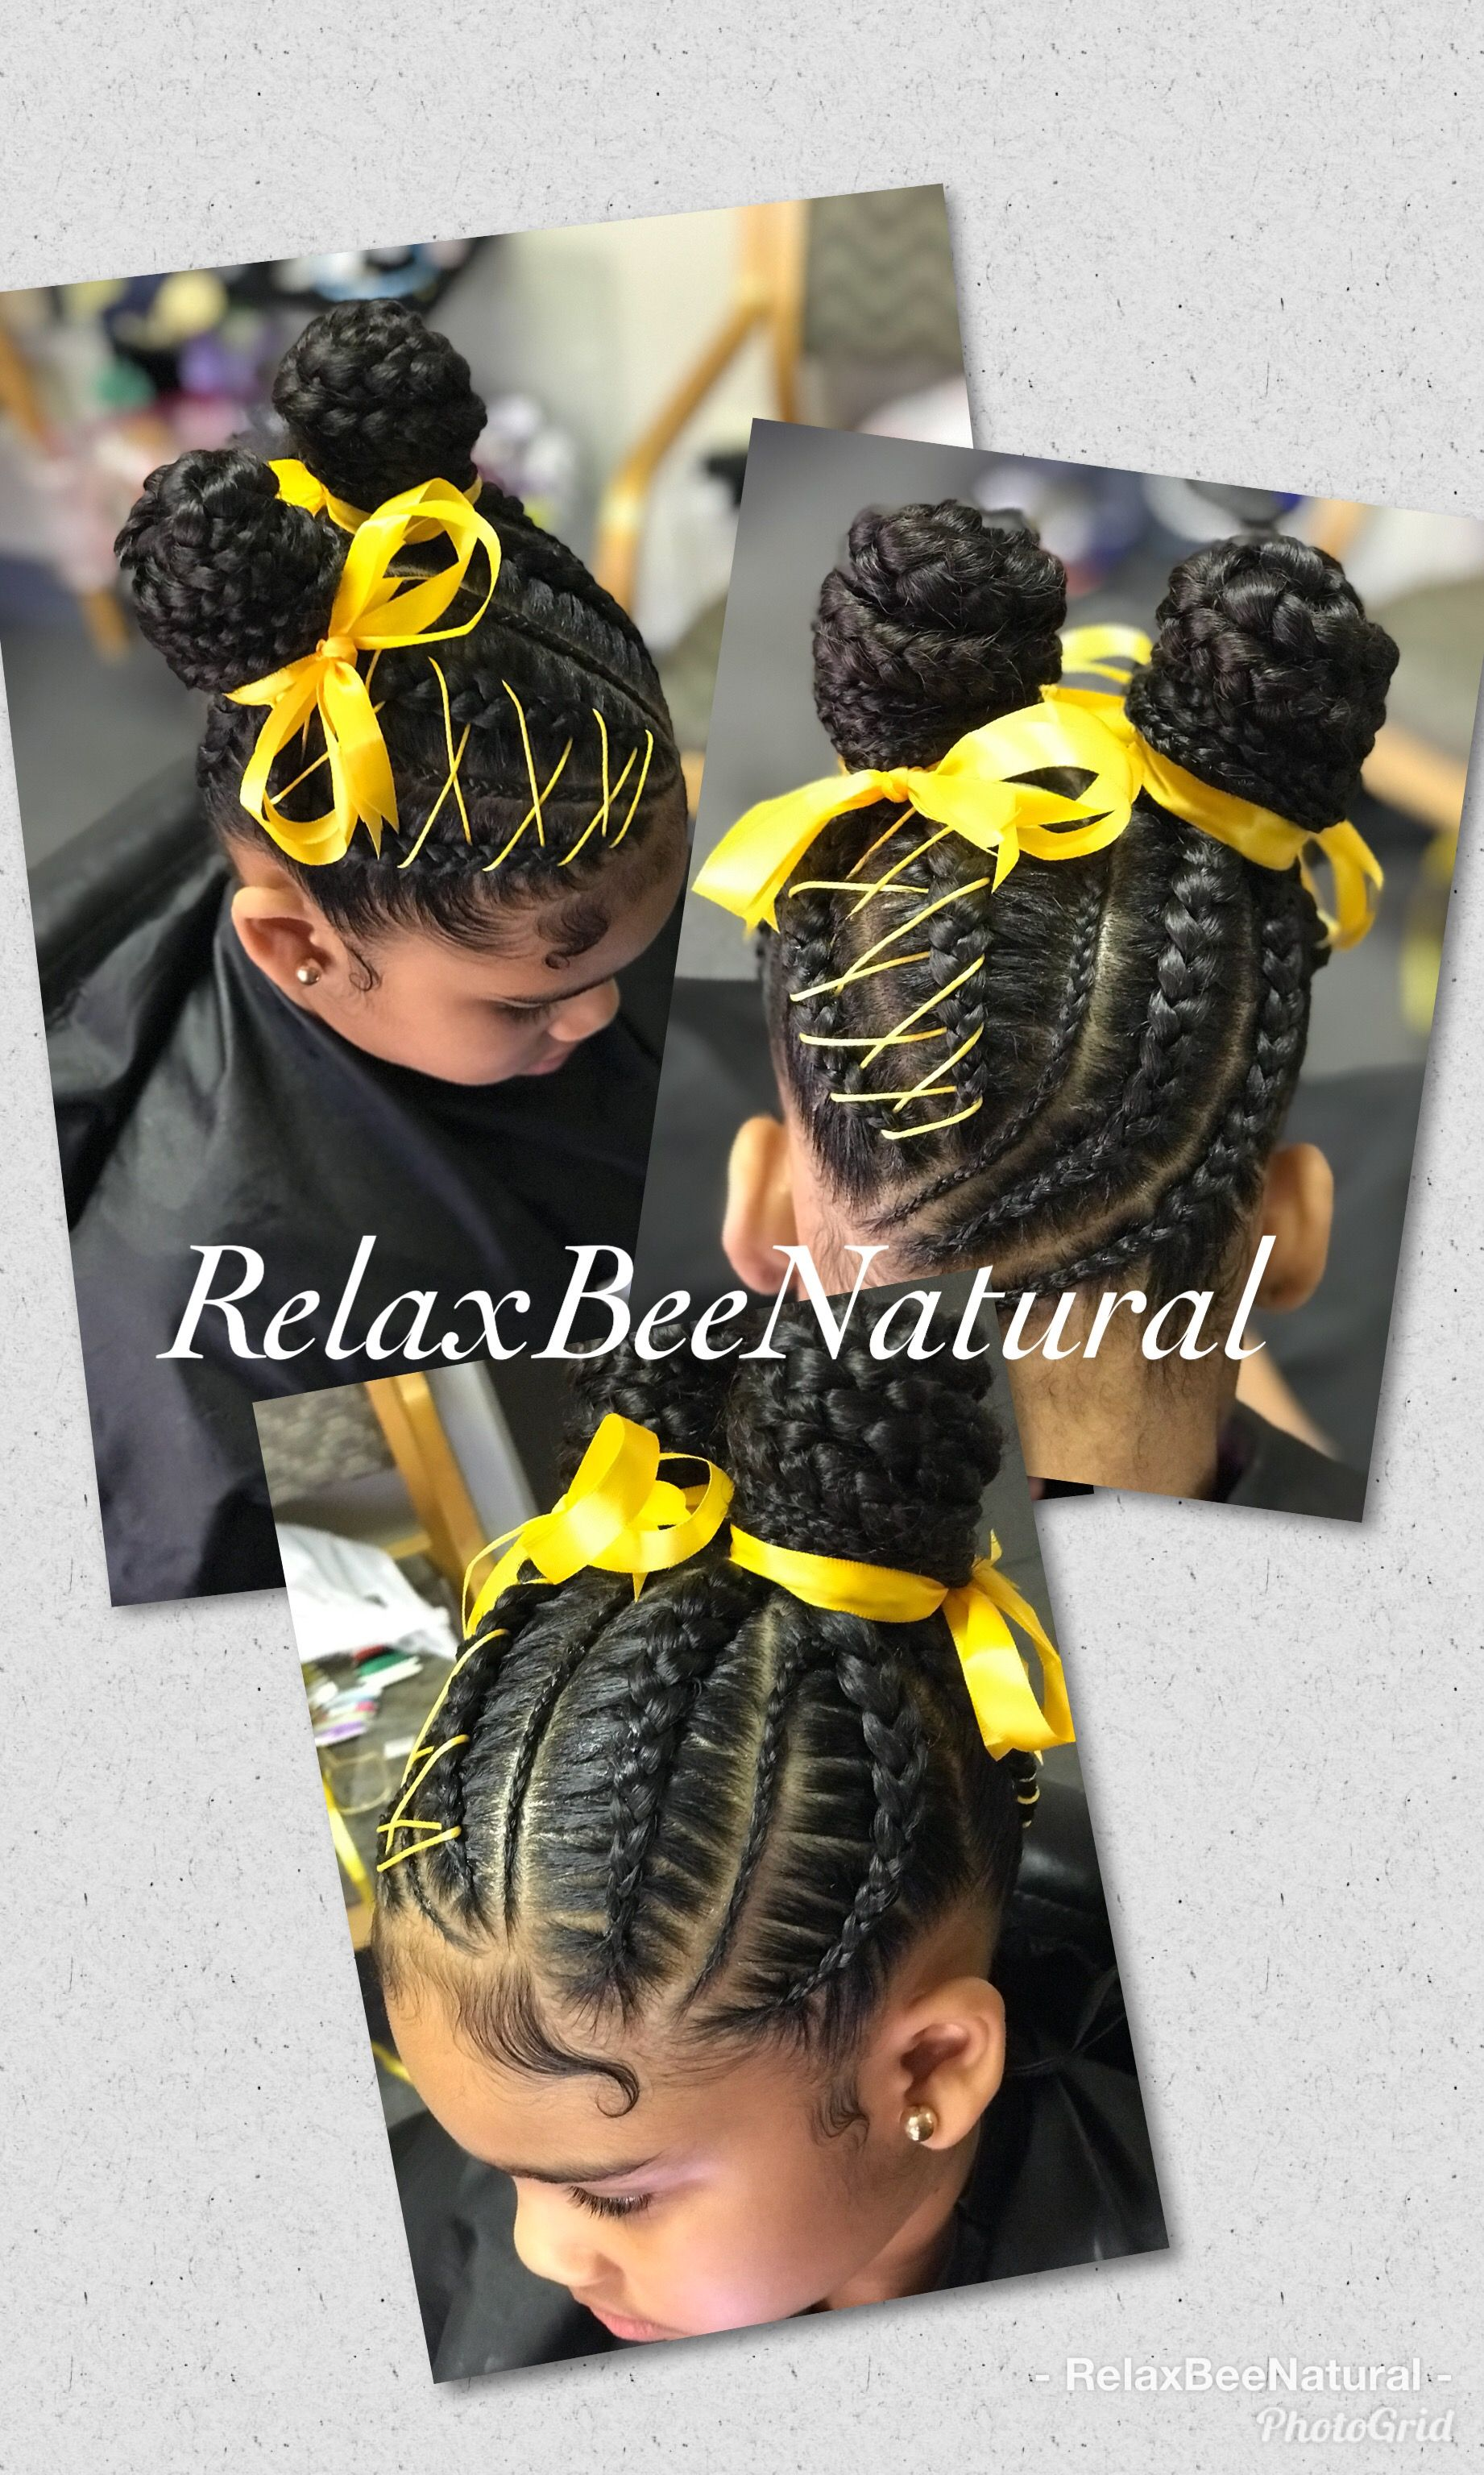 relaxbeenatural #naturalhair #protectivestyles #hairjourney